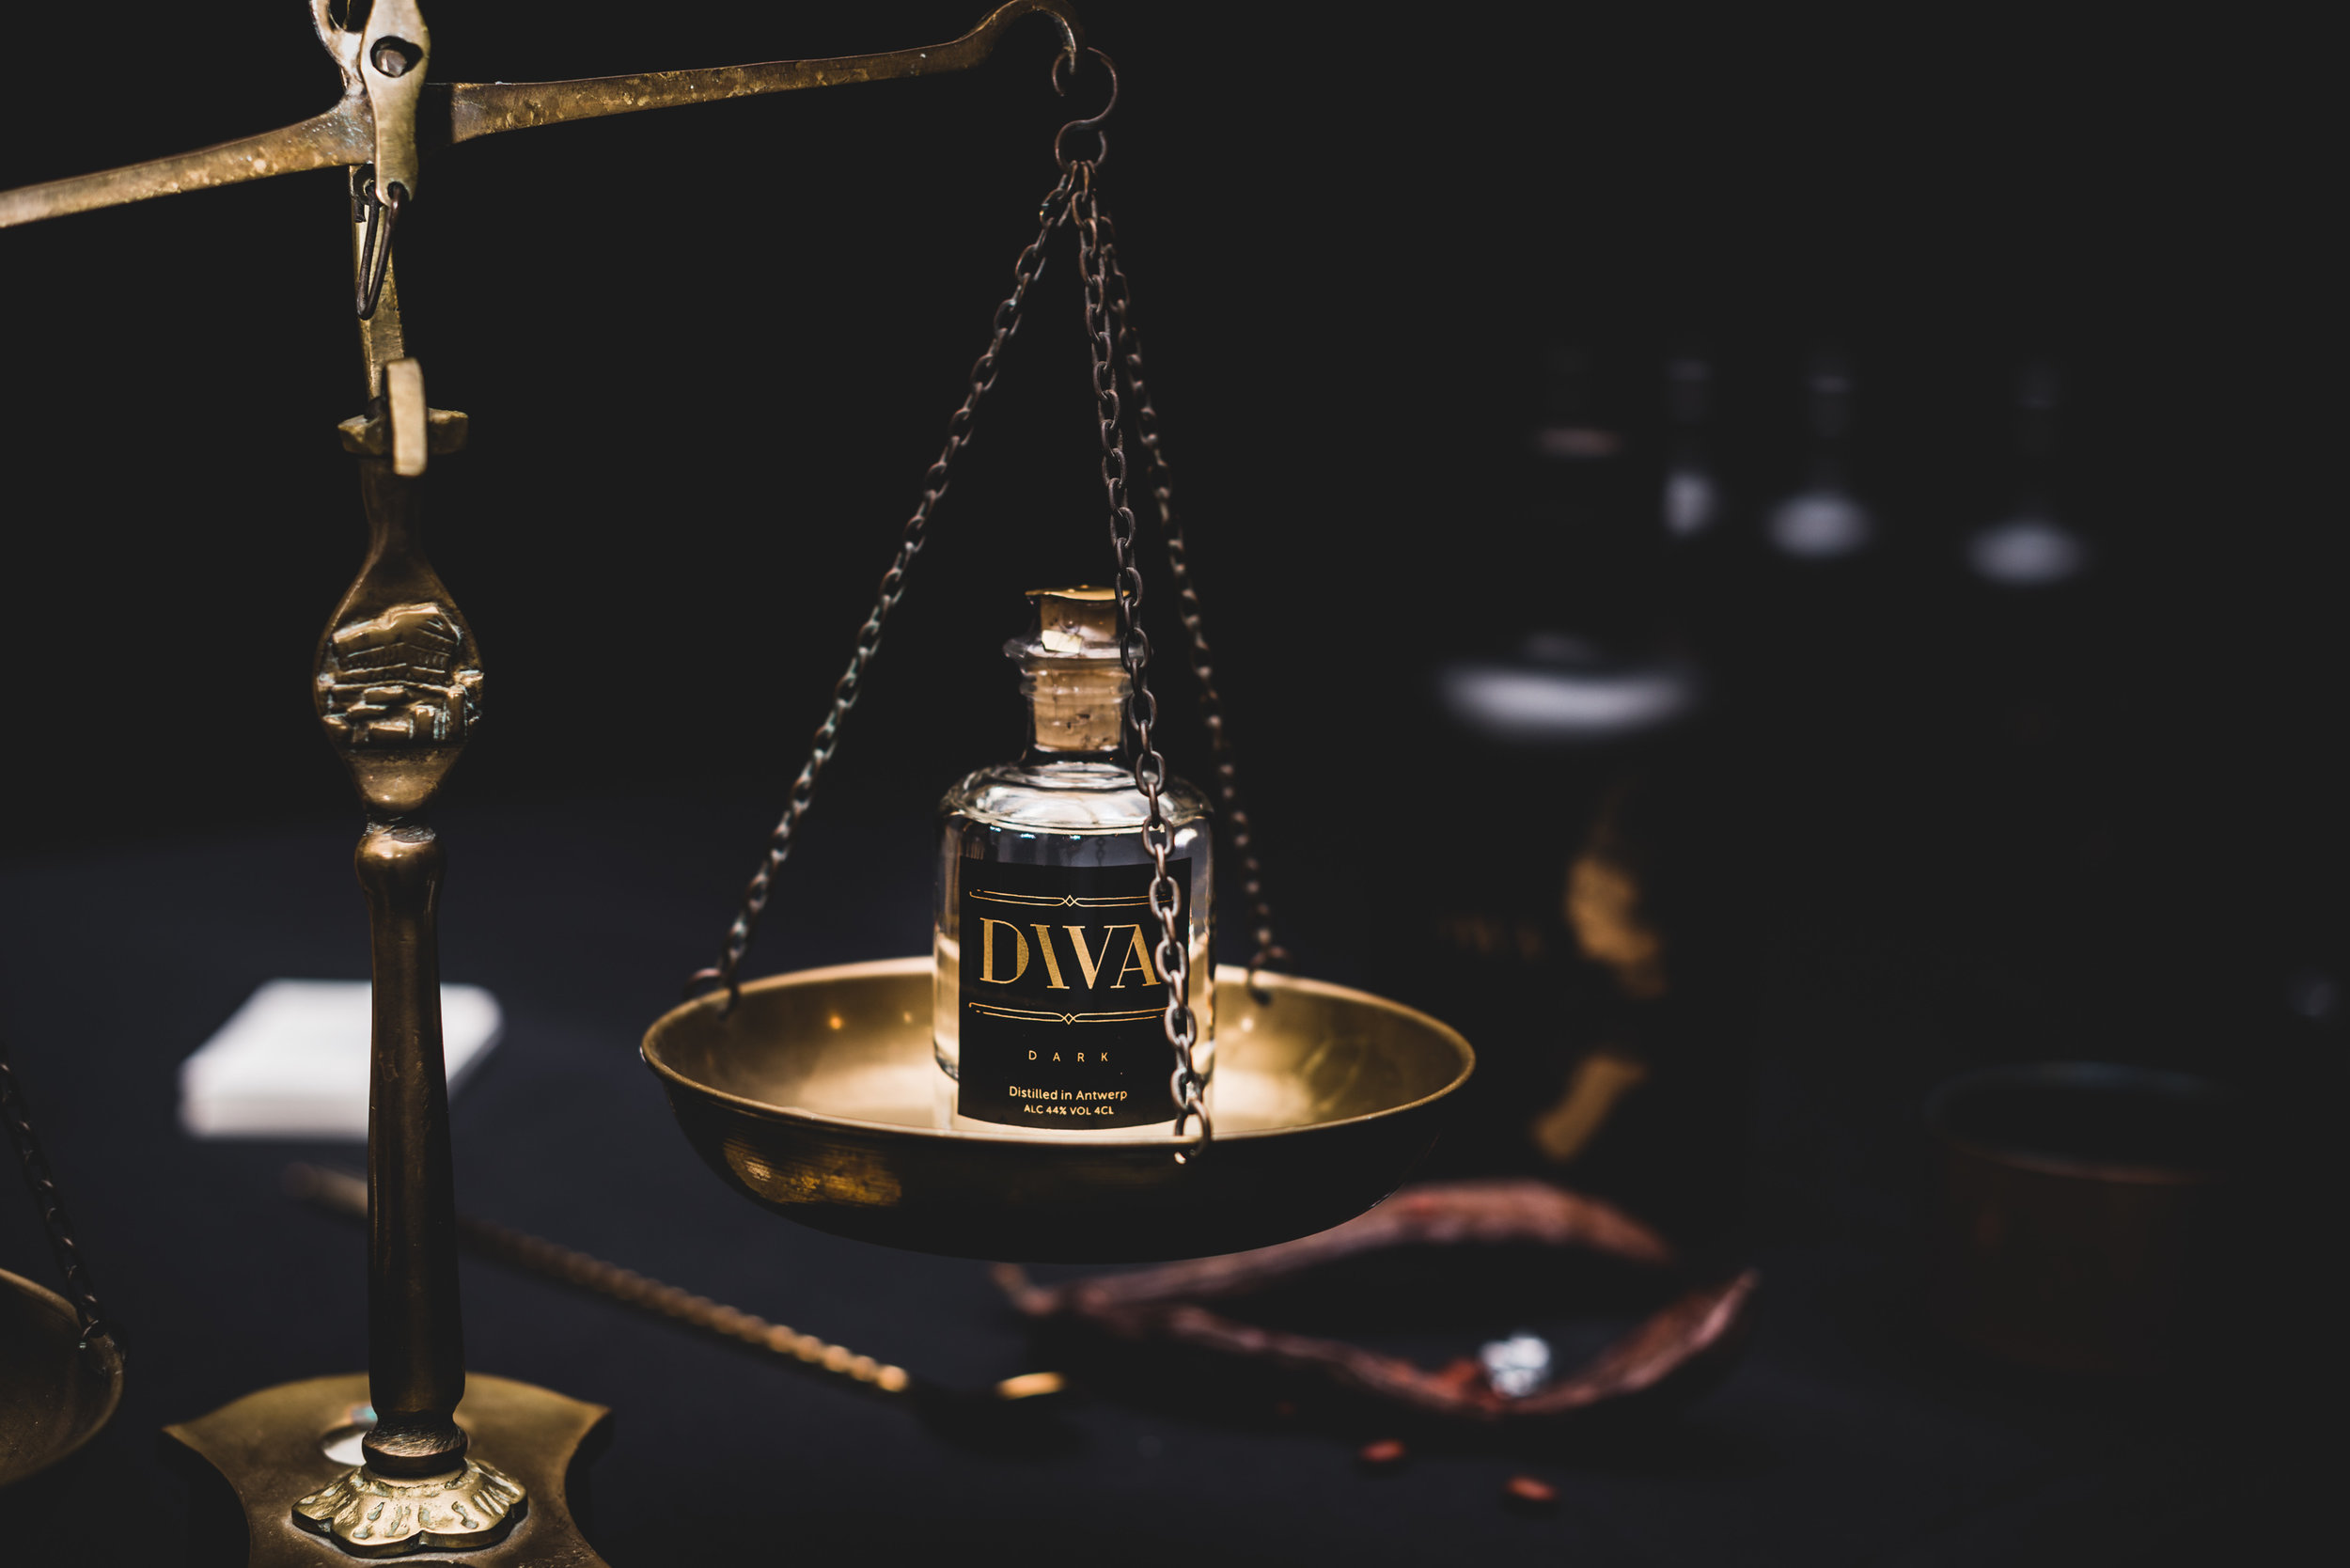 DIVA Gin mini bottle 40 ml - Looking for a small, yet stylish gift? Or do you want to surprise someone extra? Our mini DIVA Gin bottle is ideal!For 6 pieces:€ 39,75 i.s.o €47,7